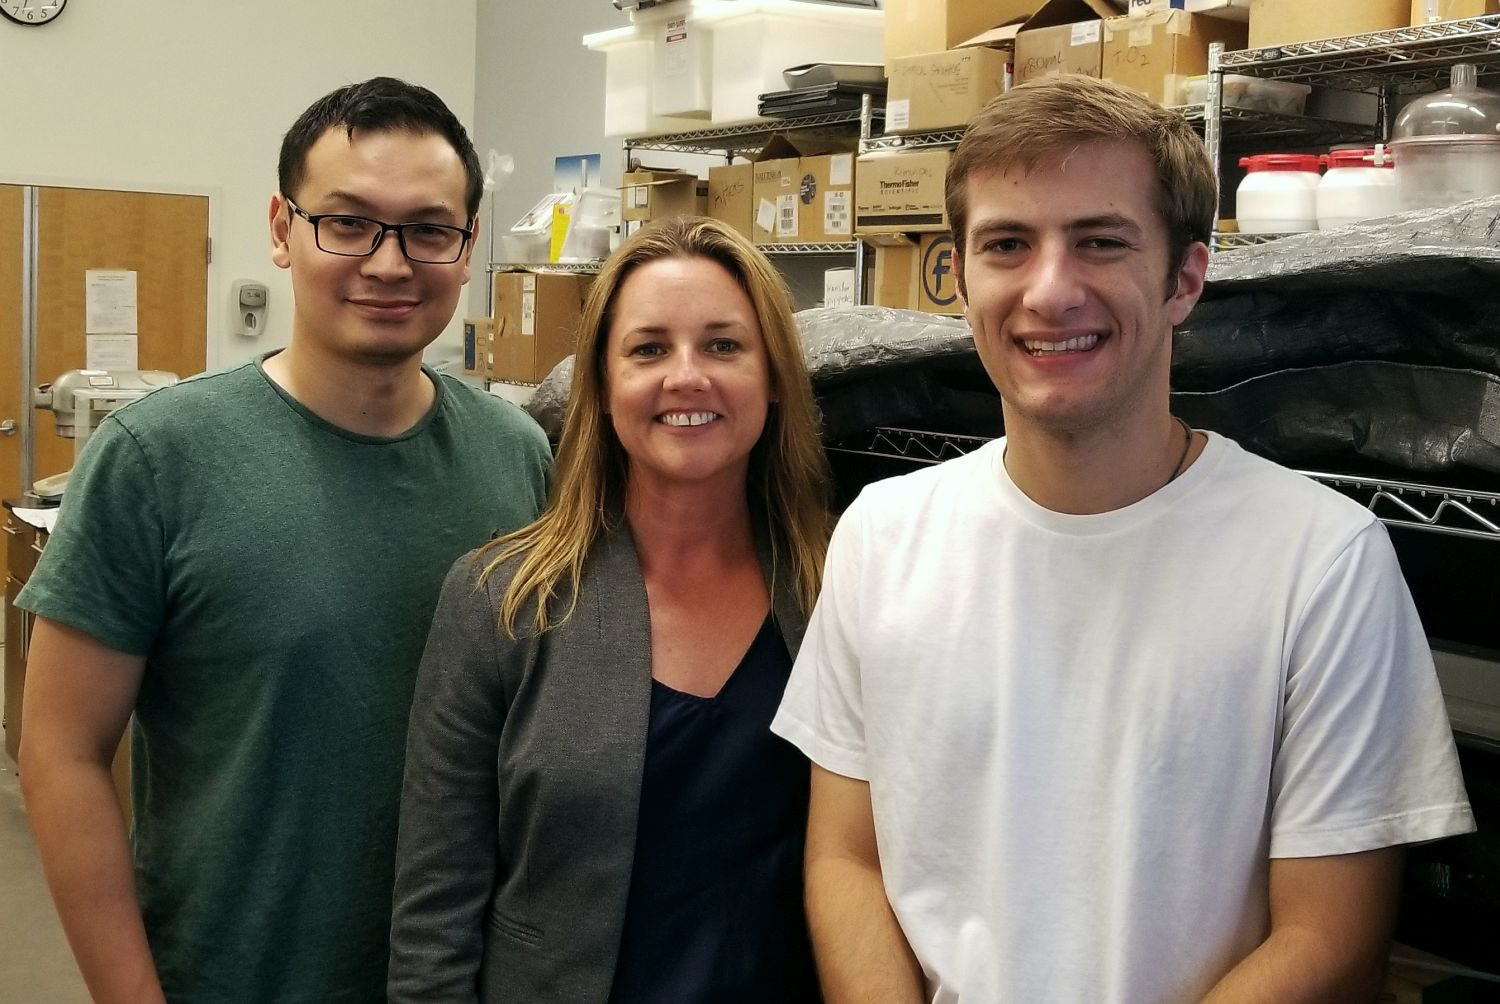 Bill Jin, Dr. Kimberly Kurtis and Sam Lucas in the laboratory.